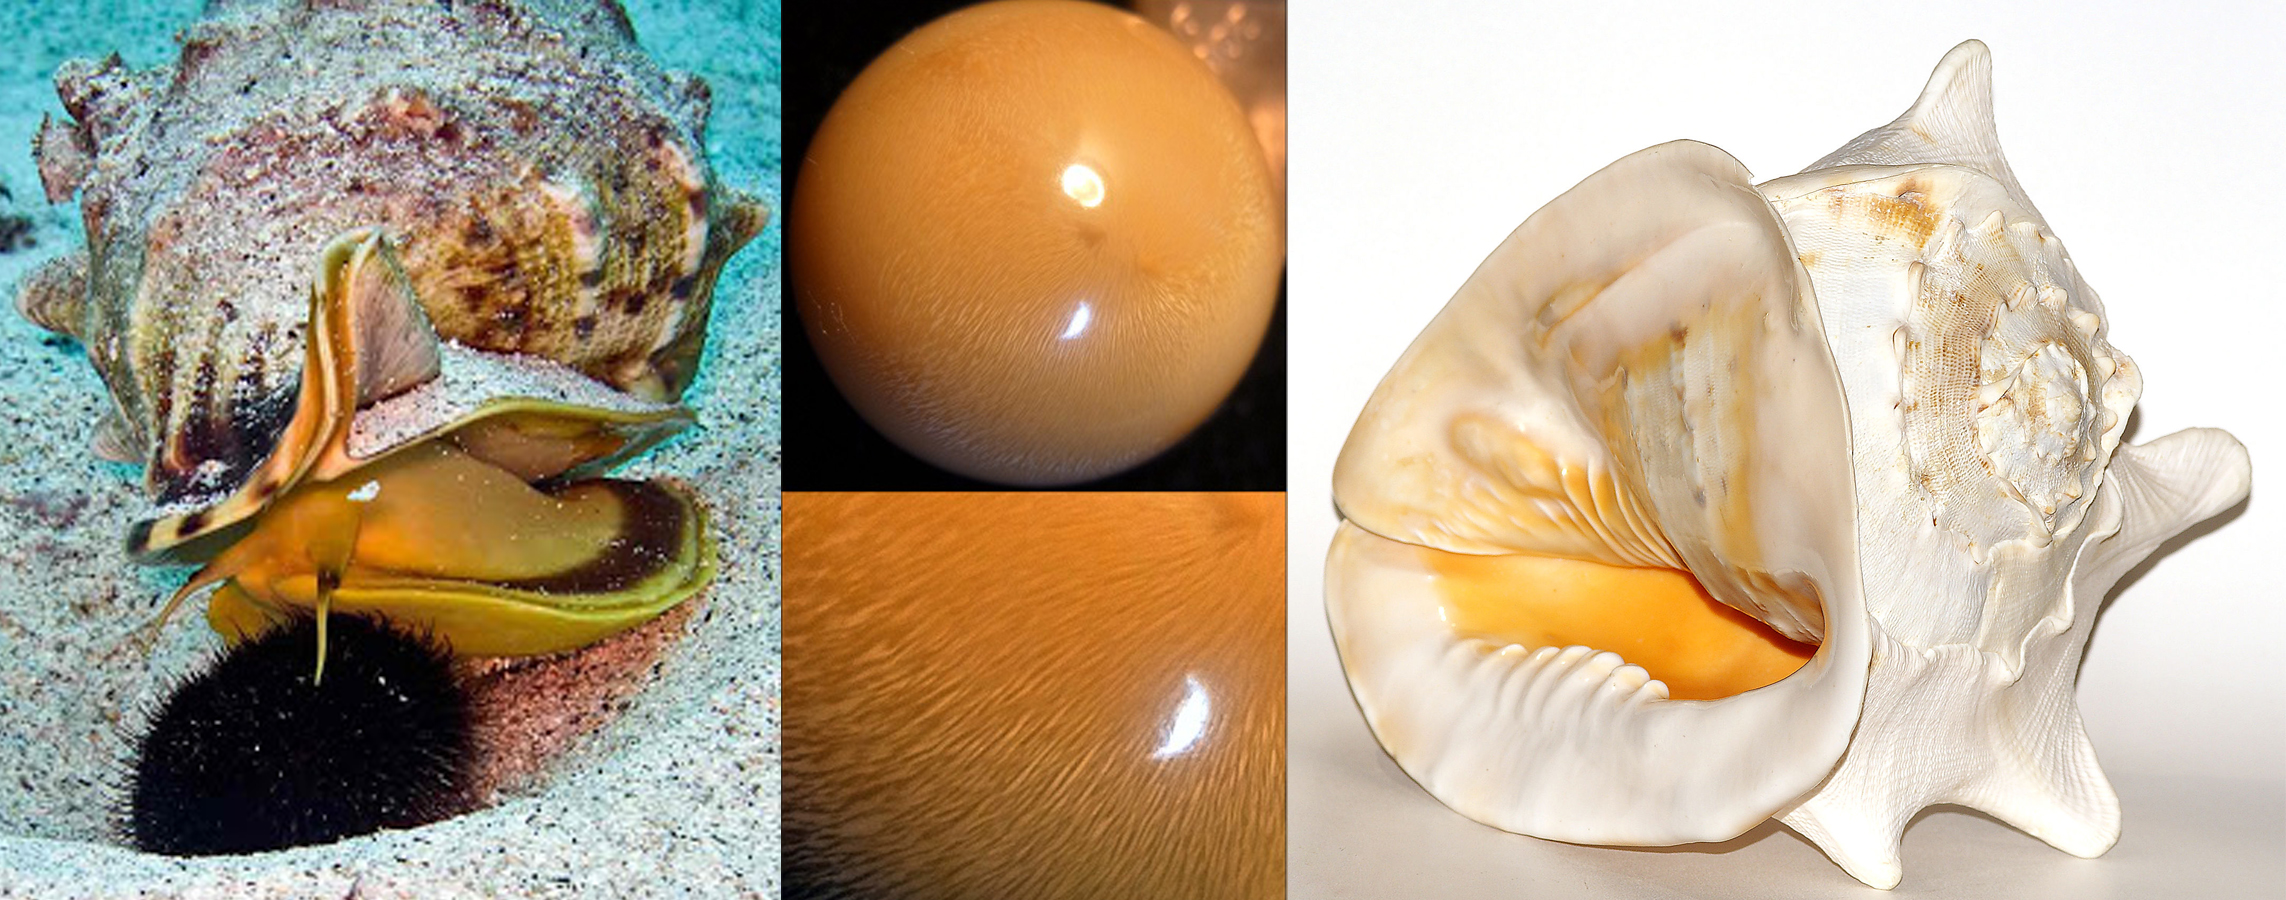 Cassis pearls are another of the rare, and very expensive species of gastropod formed pearls. Their atributions and color designations are very similar to that of the Melo pearl mentioned above, but tend to be less orange and more creamy or yellow, with clear fire in the nacre.